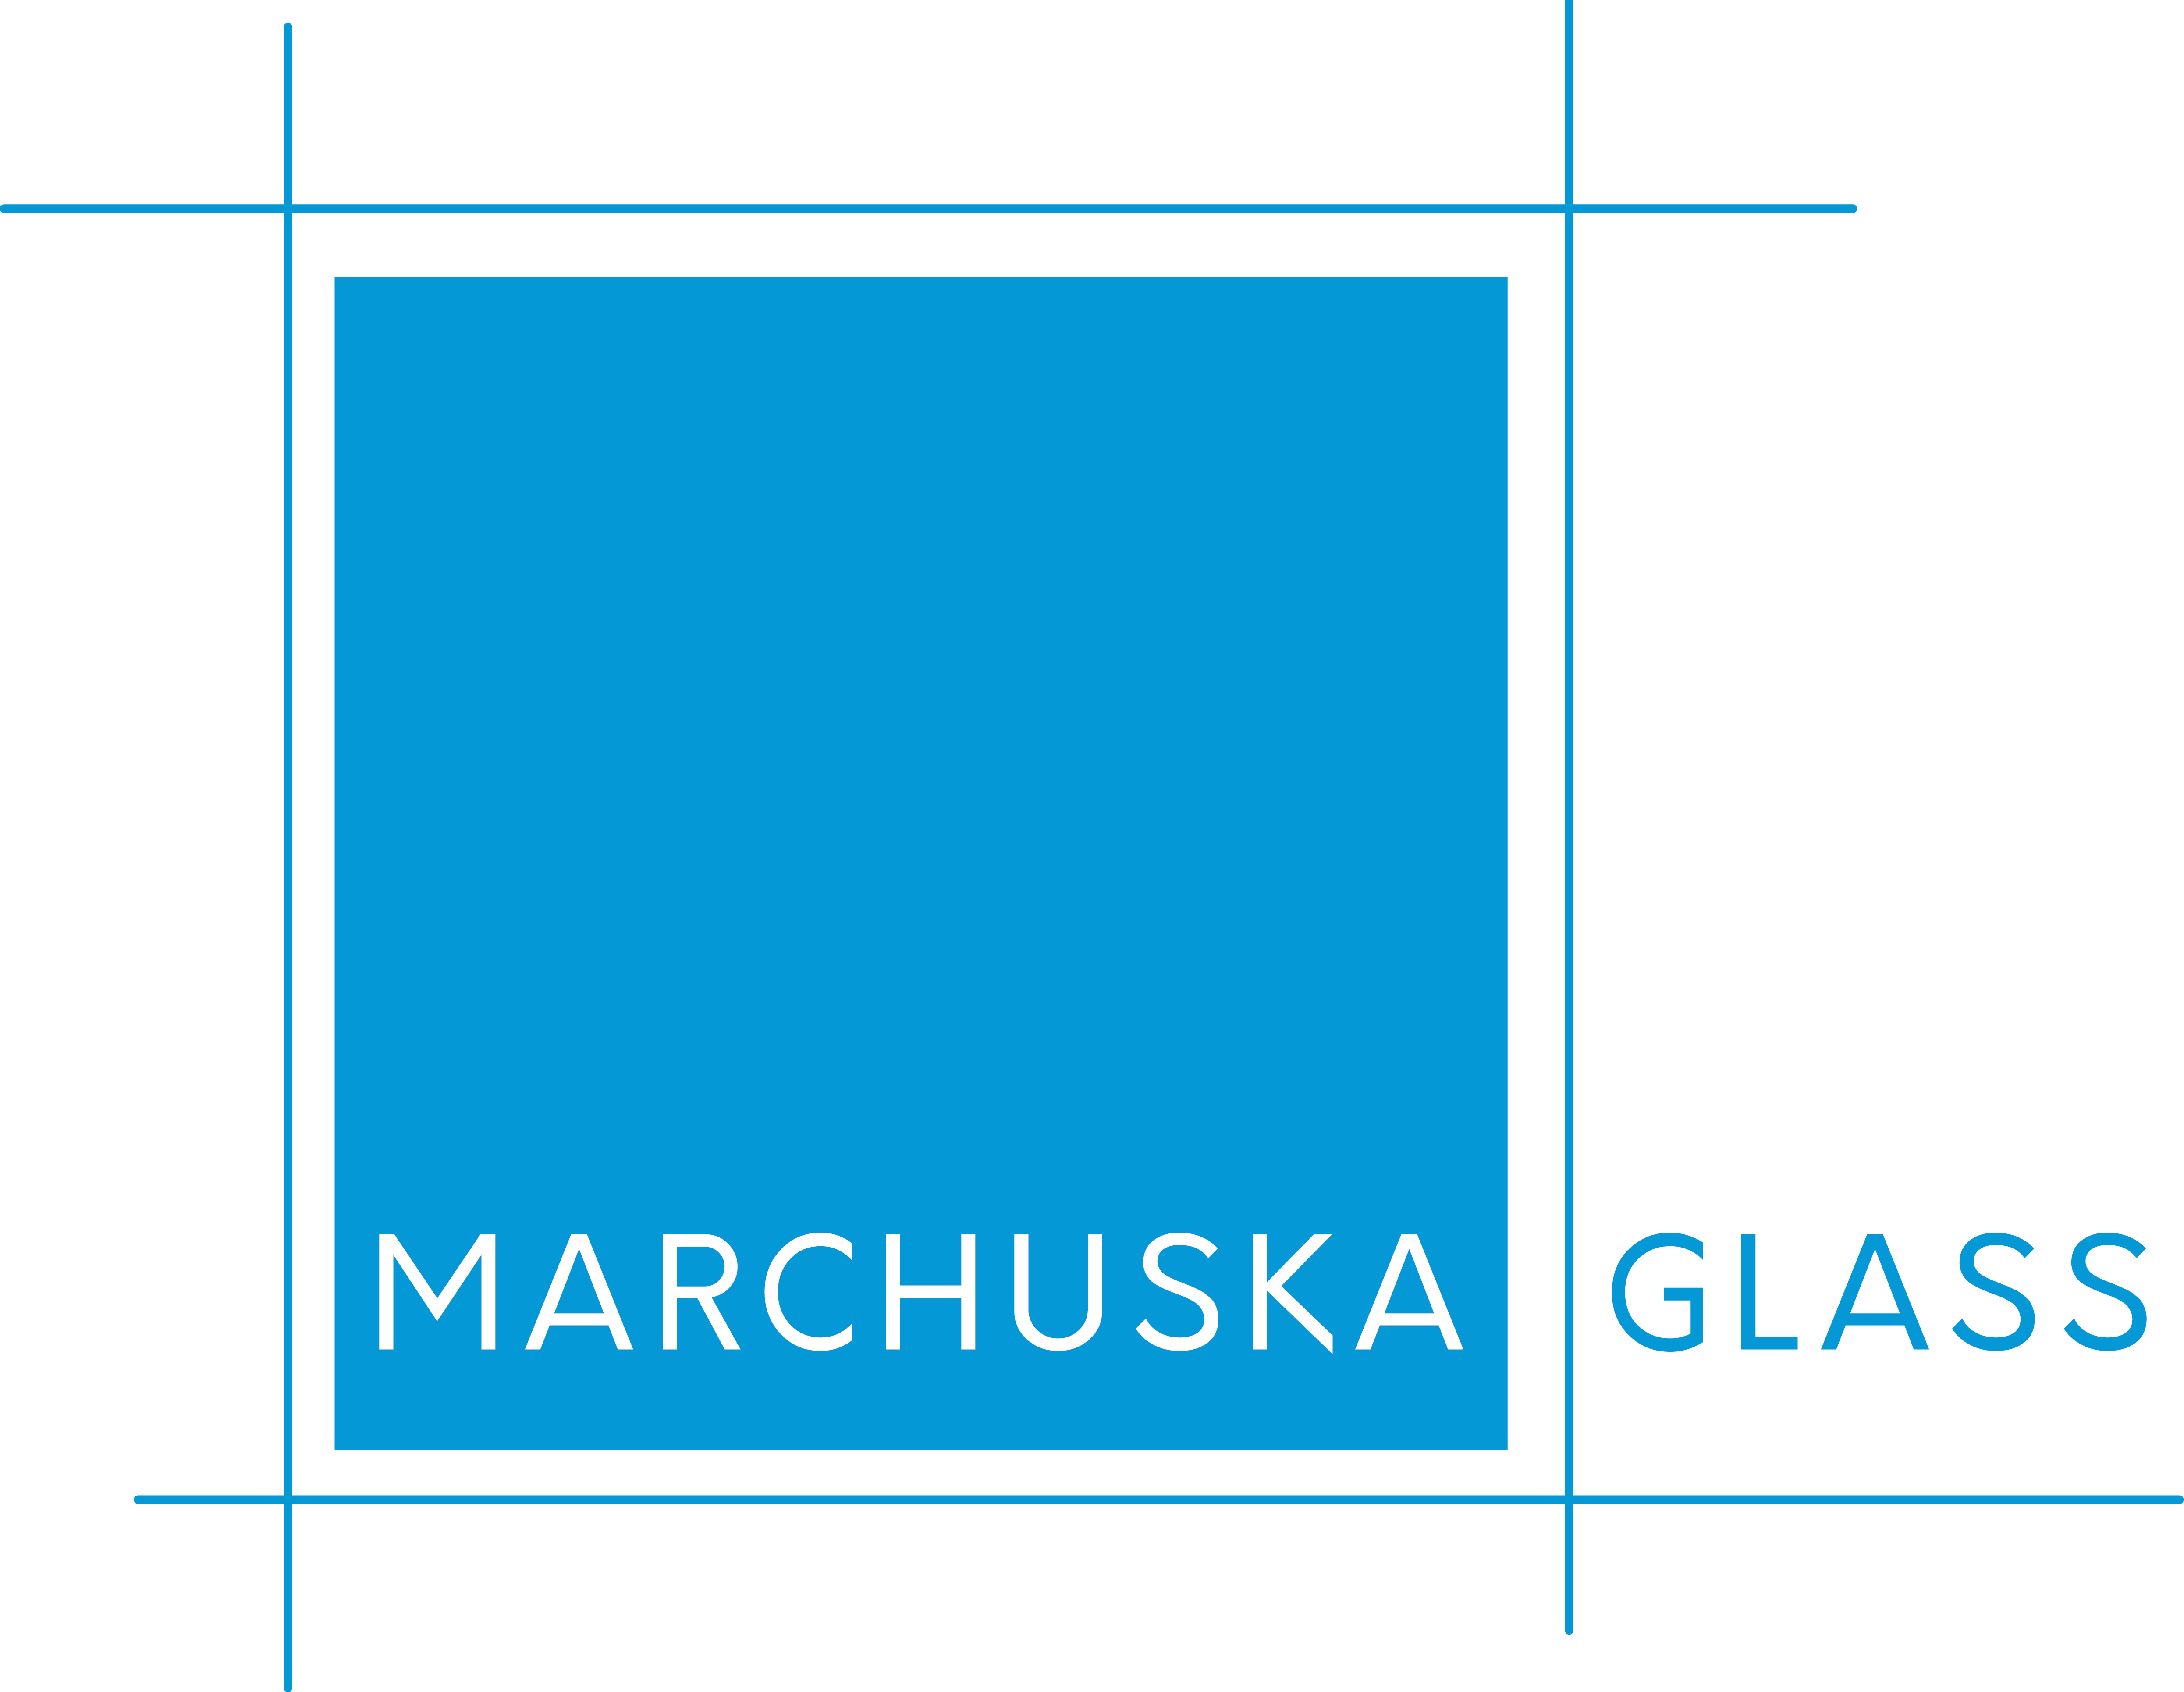 Marchuska Brothers | General Contractor, Residential & Commercial Construction - Binghamton NY